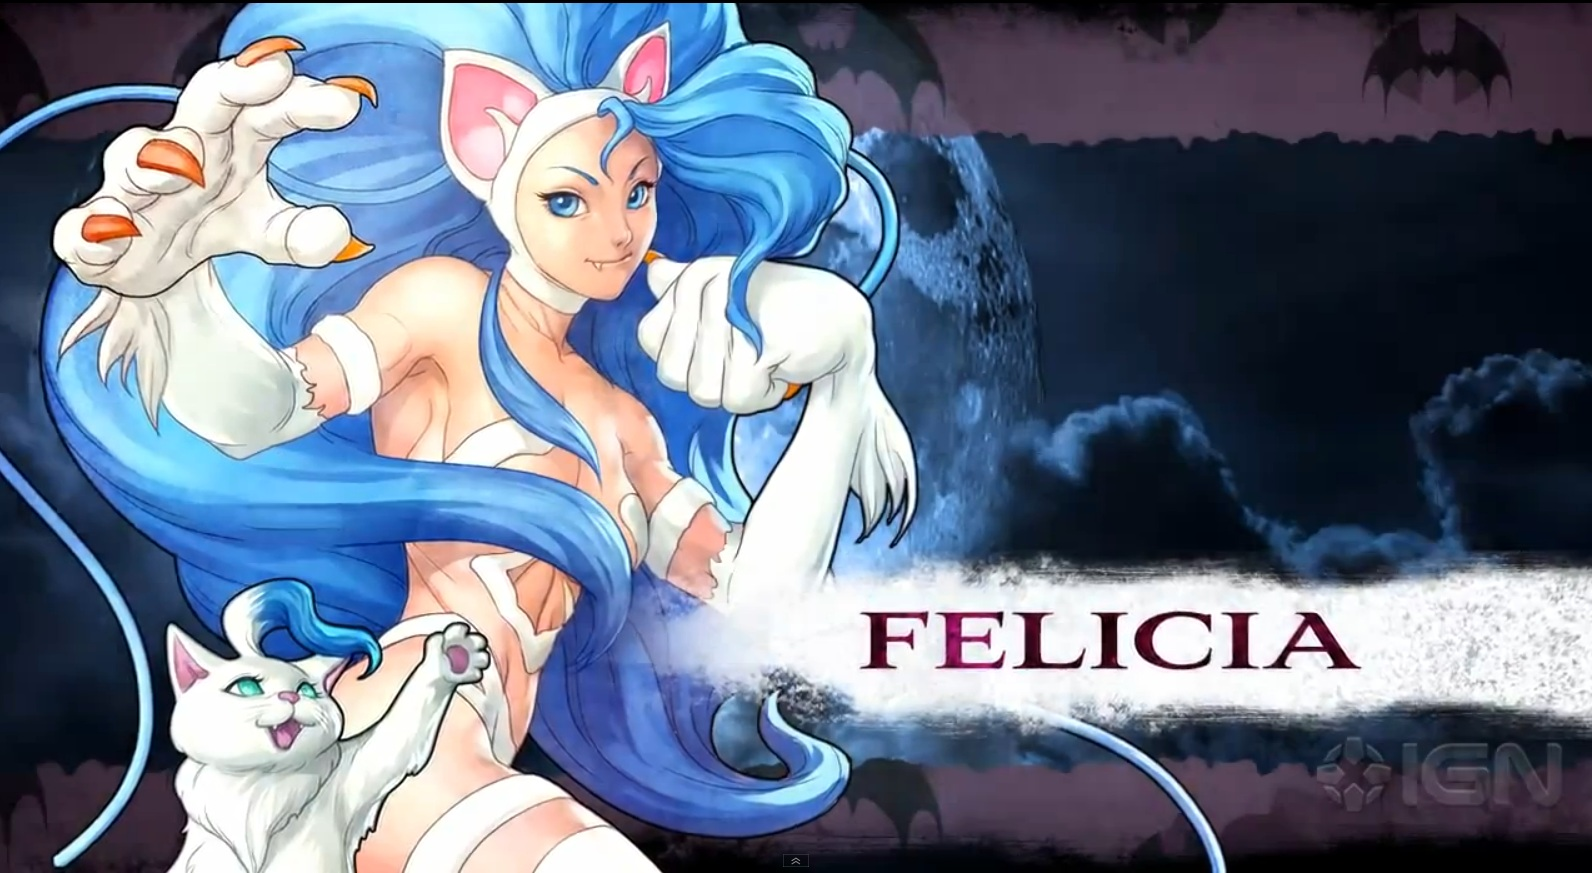 http://criticsight.com/wp-content/uploads/2013/02/felicia-darkstalkers-resurrection-criticsight.jpg